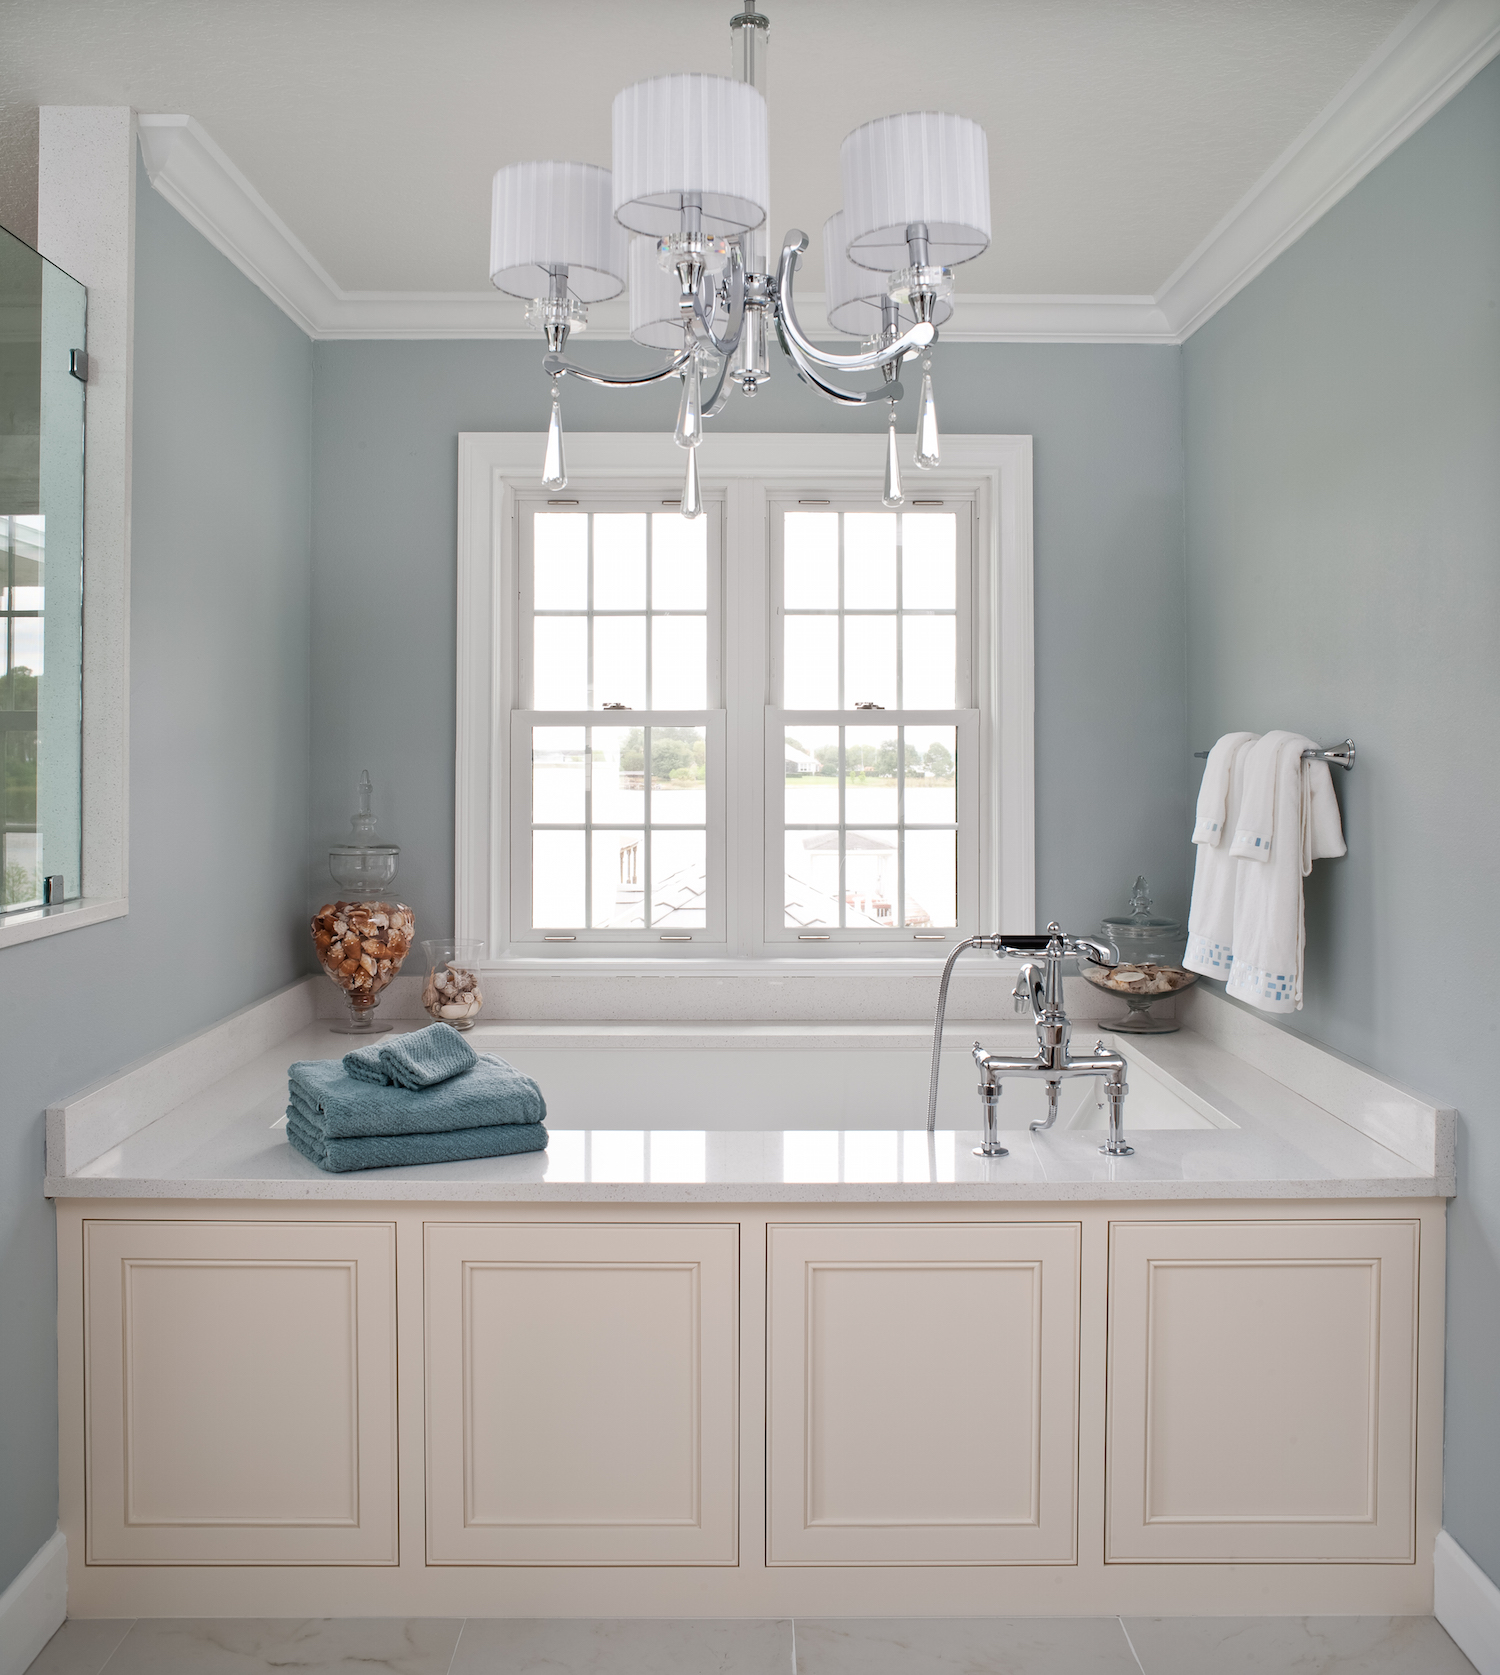 Bathroom Archives | Simonton Windows & Doors